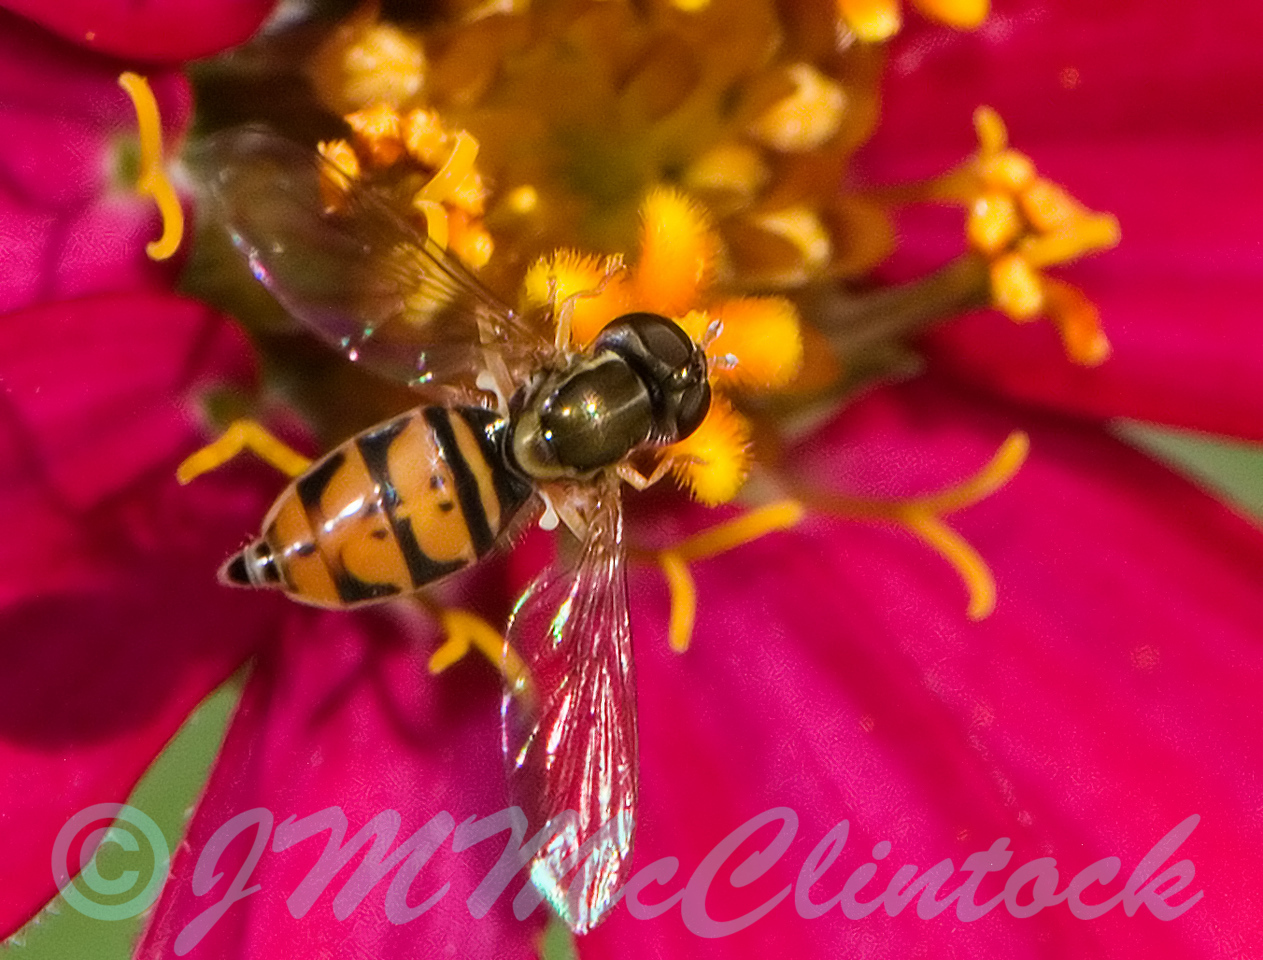 Another shot of a Hover Fly